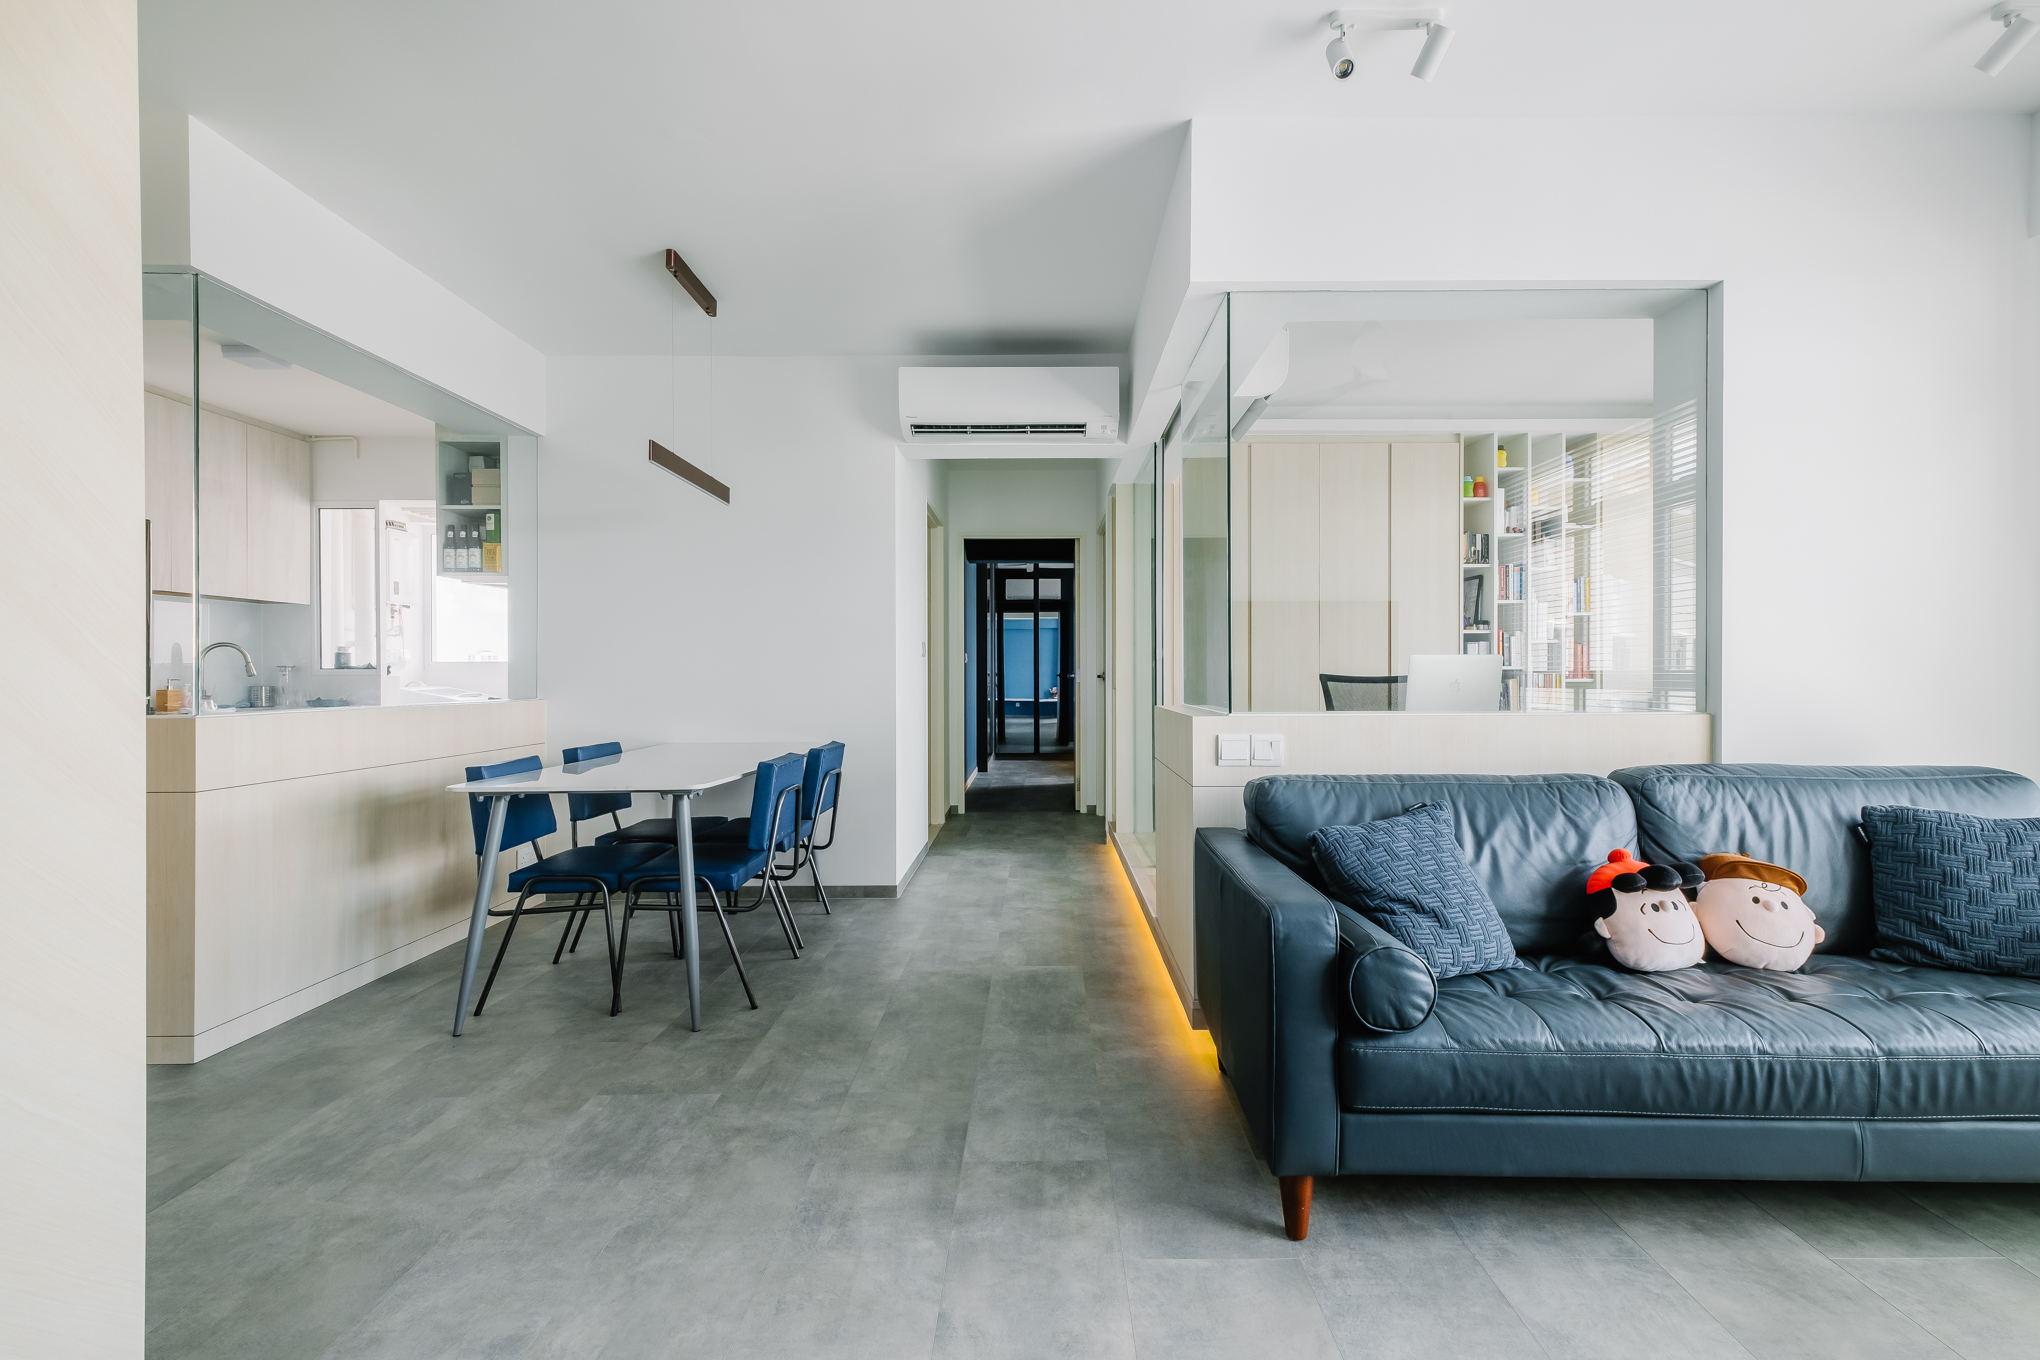 Interior photography Singapore Architecture Photography Residential Commercial Hospitality Travel Destinations Charmaine Wu